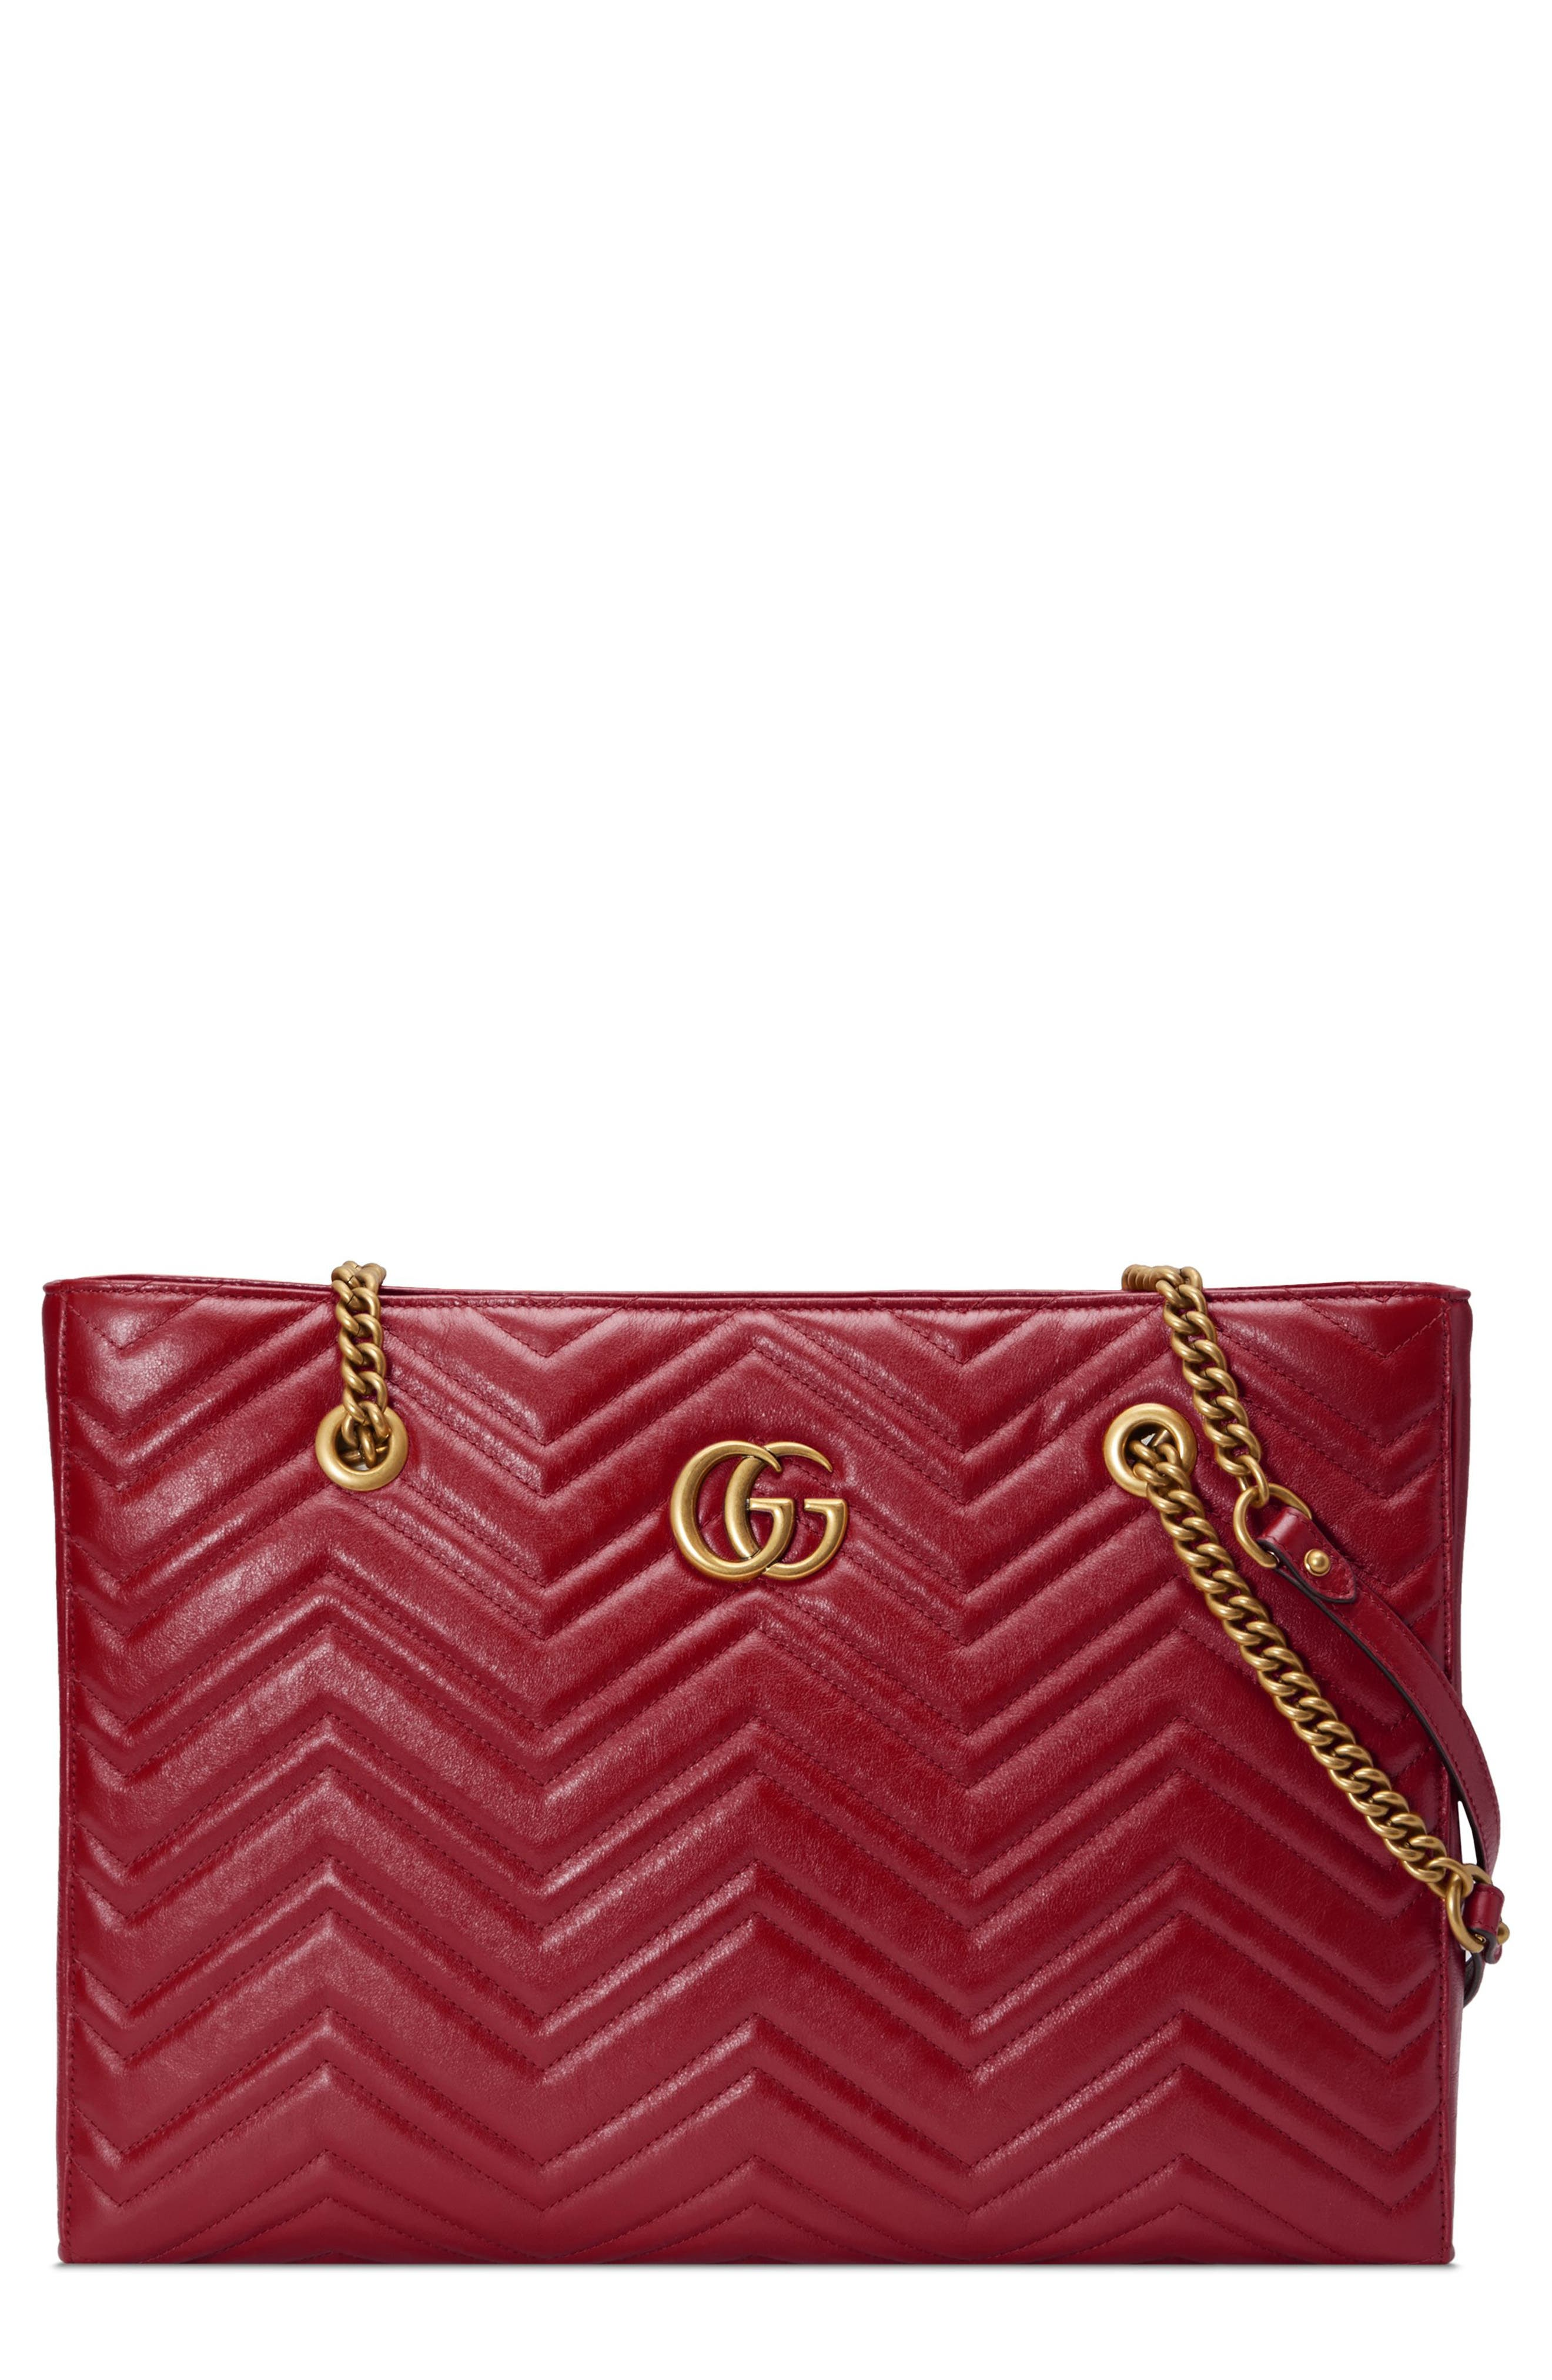 e6ecce36c400 Gucci Gg Marmont 2.0 Matelasse Medium Leather East/west Tote Bag - Red